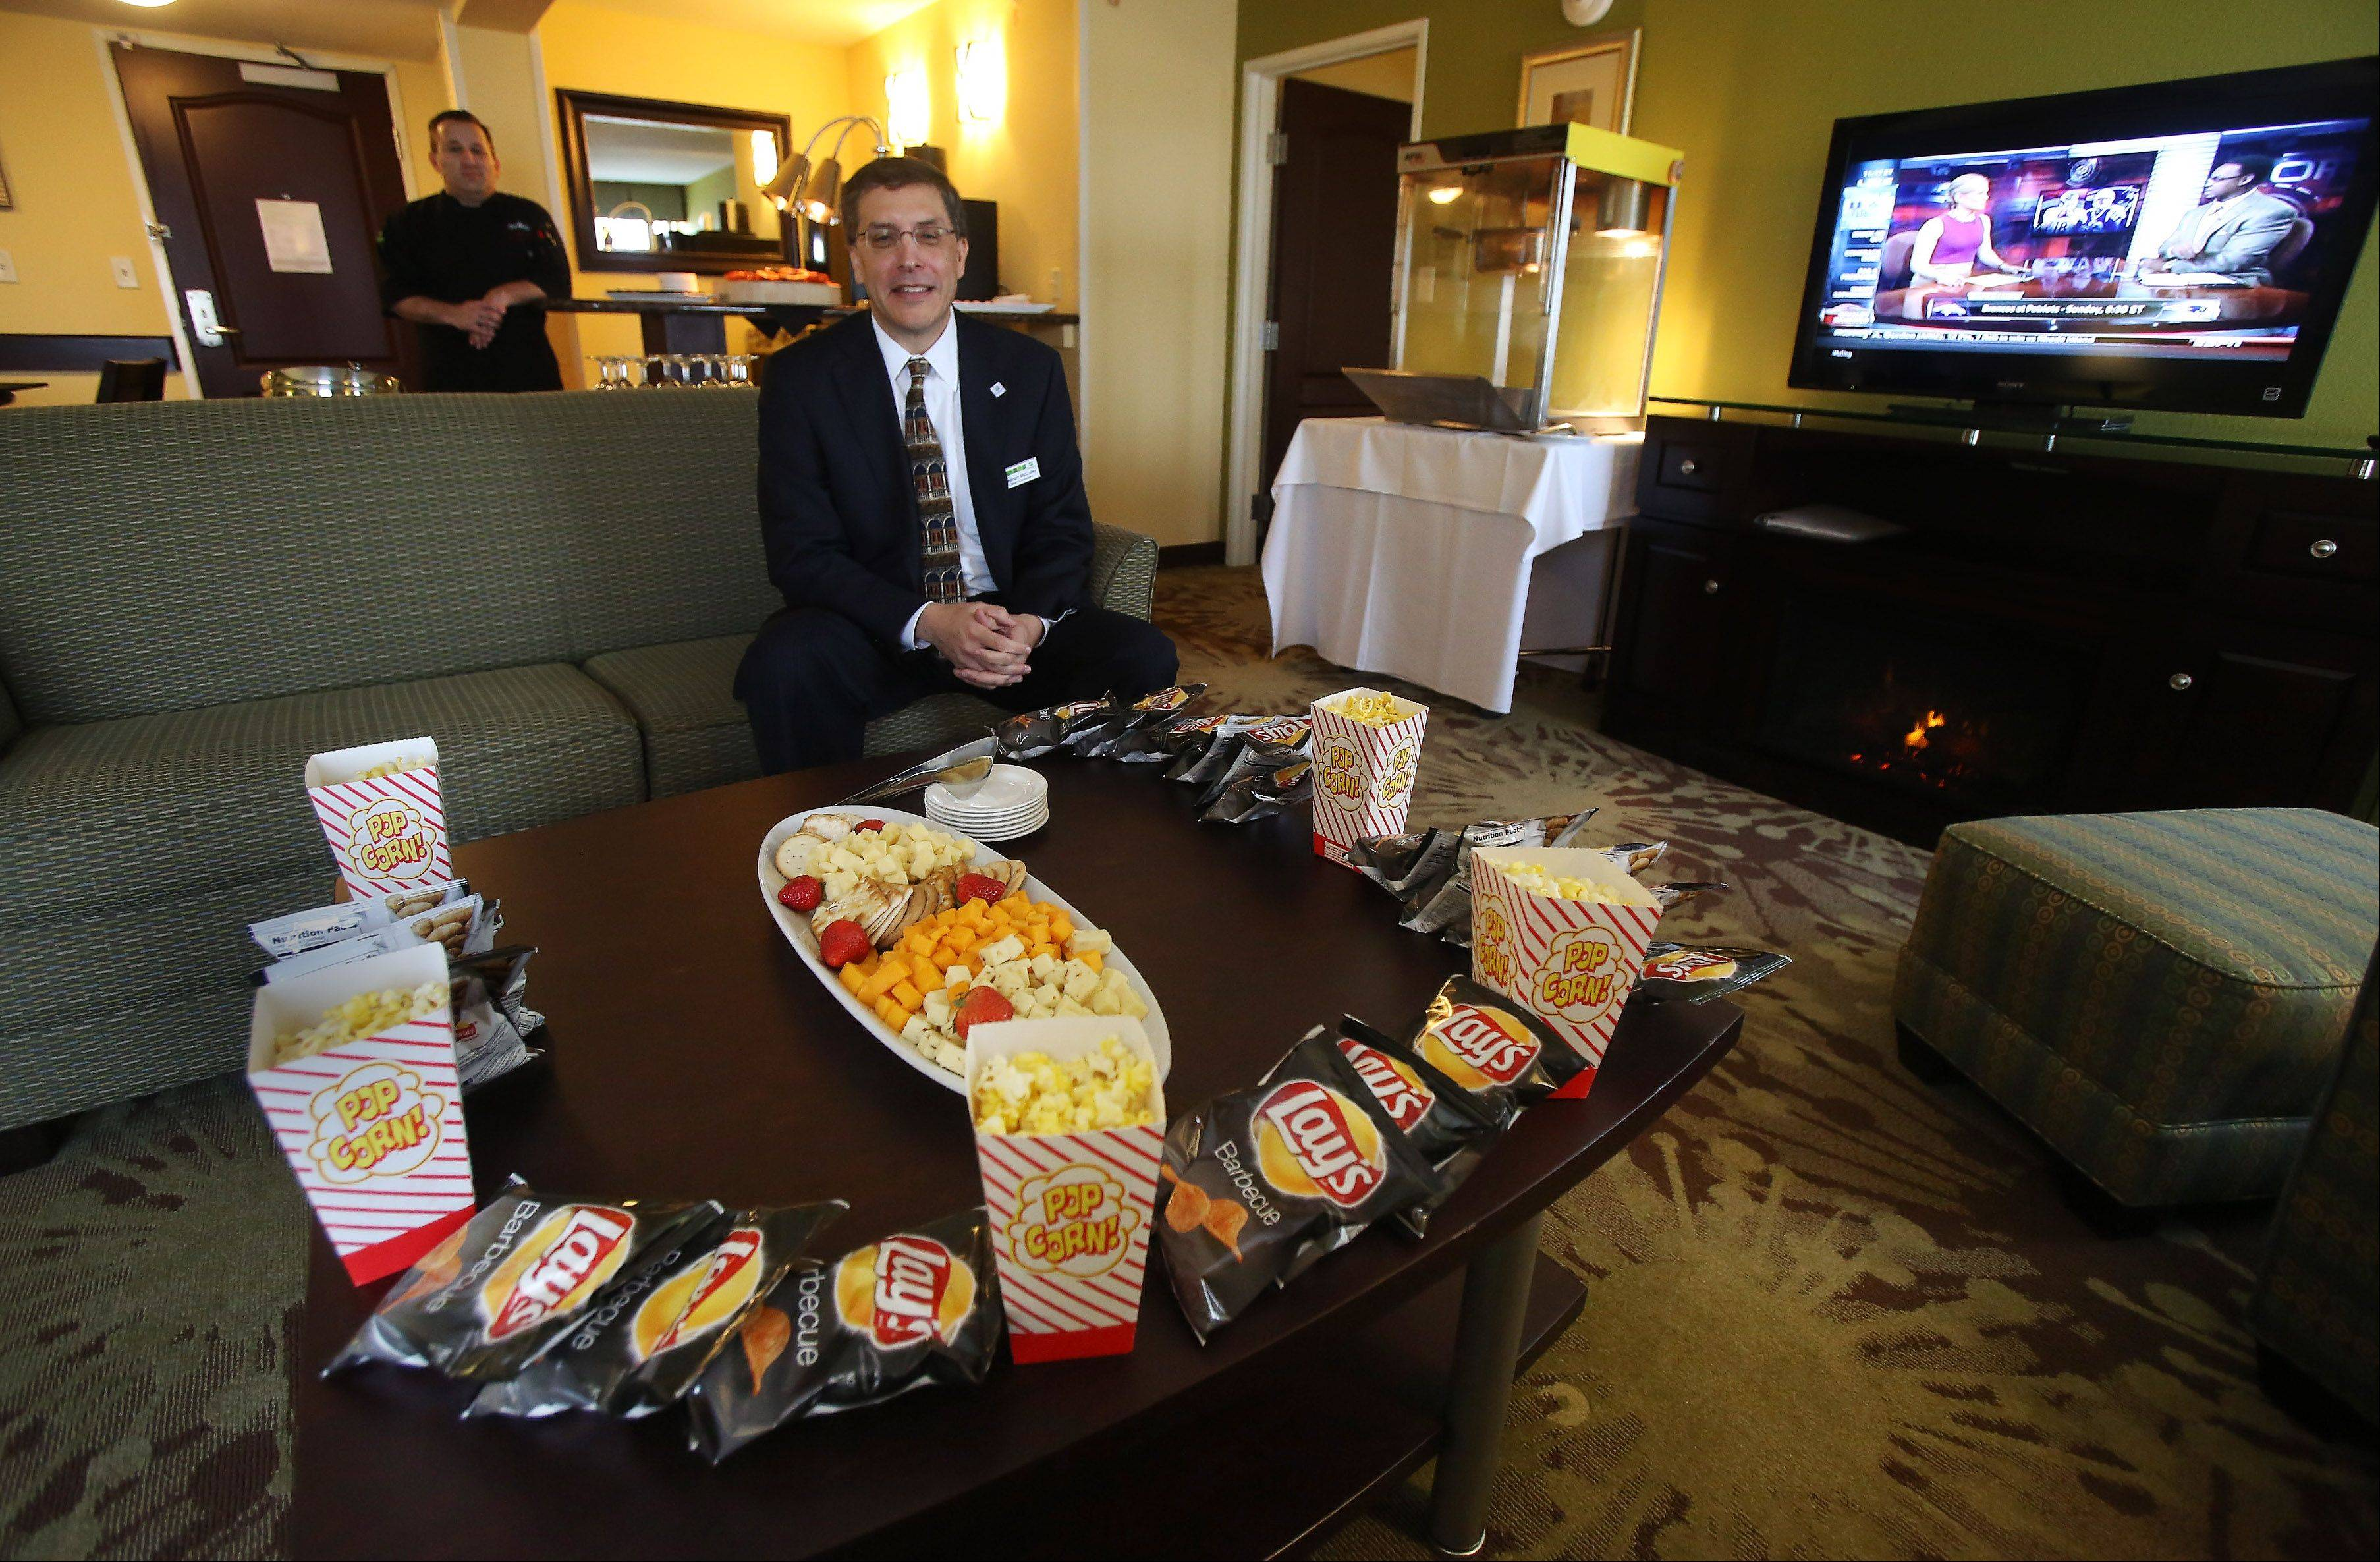 General manager Stephen McCulley at the Holiday Inn Gurnee Convention Center looks forward to hosting 10 sailors from Great Lakes Naval Training Station for Thanksgiving Day. The sailors will be fed dinner and lighter fare prepared under the direction of executive chef Christopher Solare, and have use of this Presidential Suite during their stay.